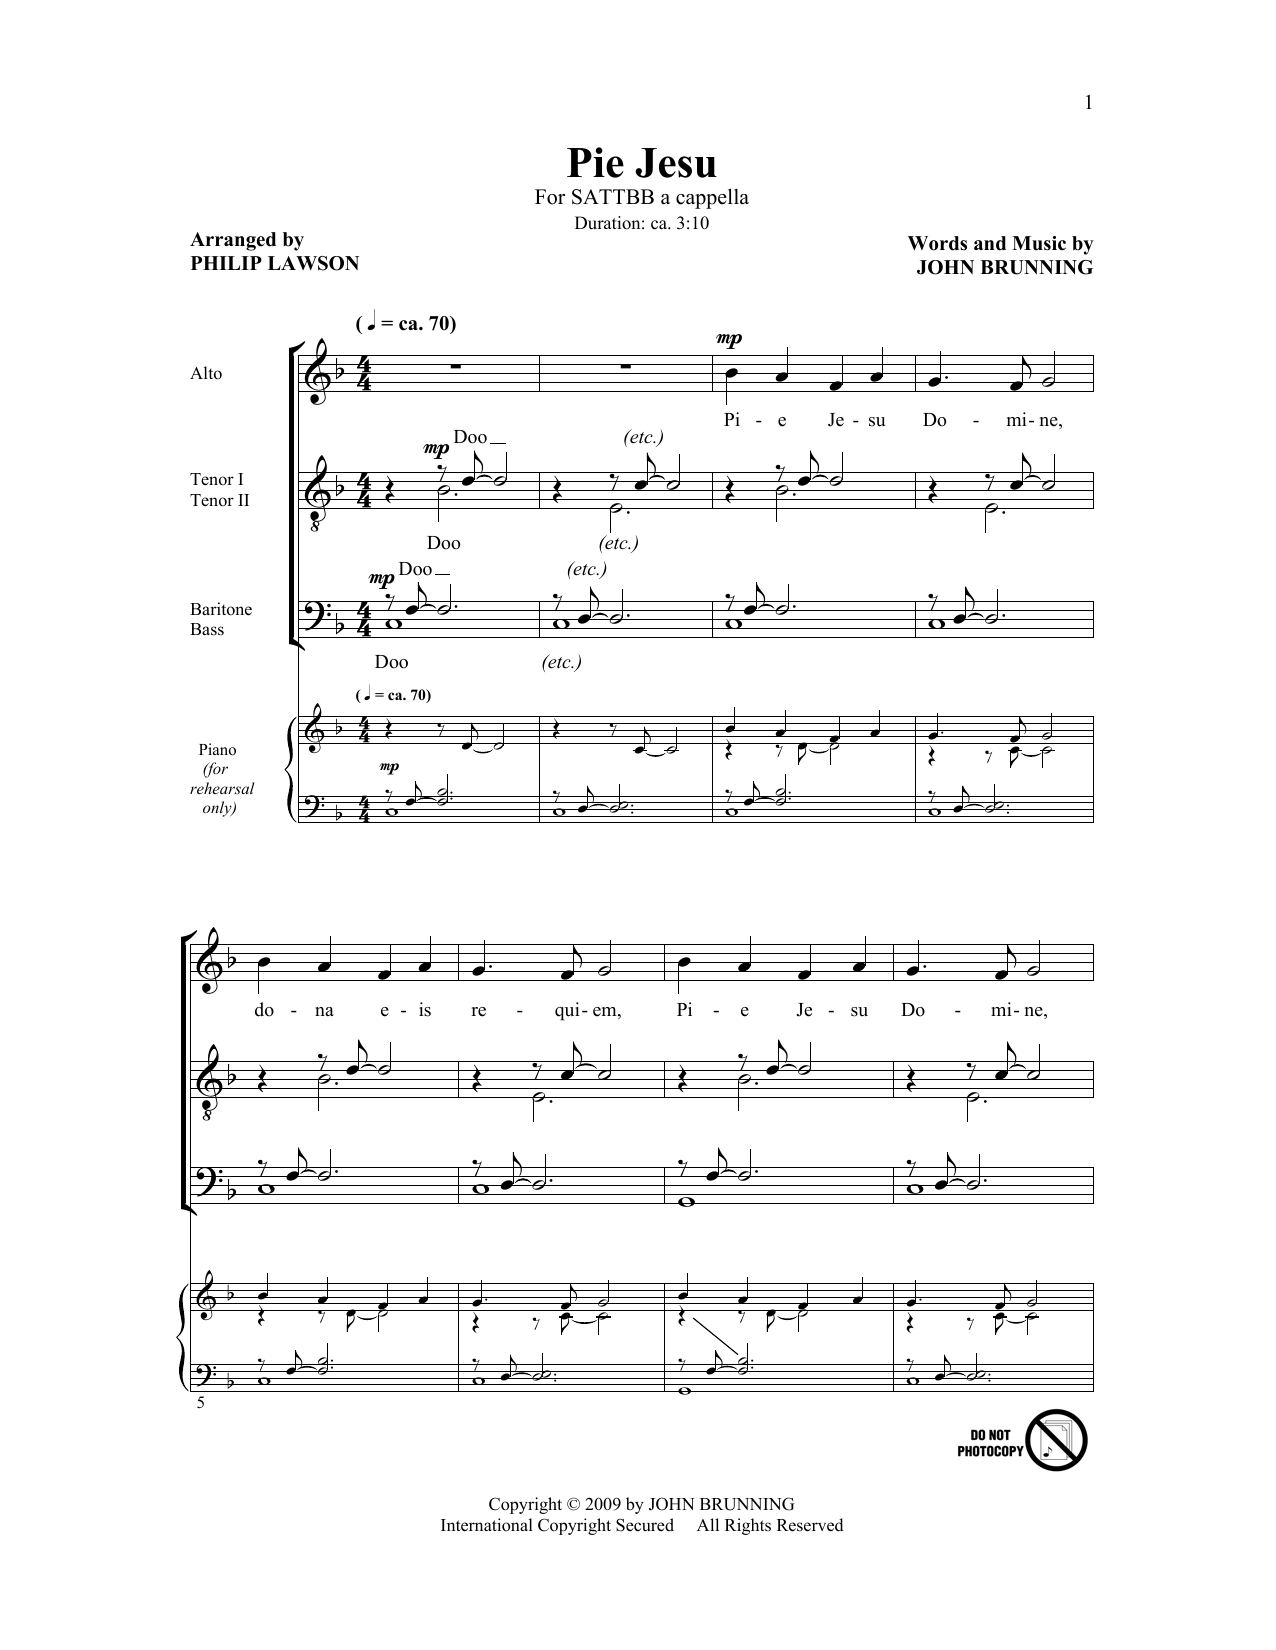 Download John Brunning 'Pie Jesu (arr. Philip Lawson)' Digital Sheet Music Notes & Chords and start playing in minutes